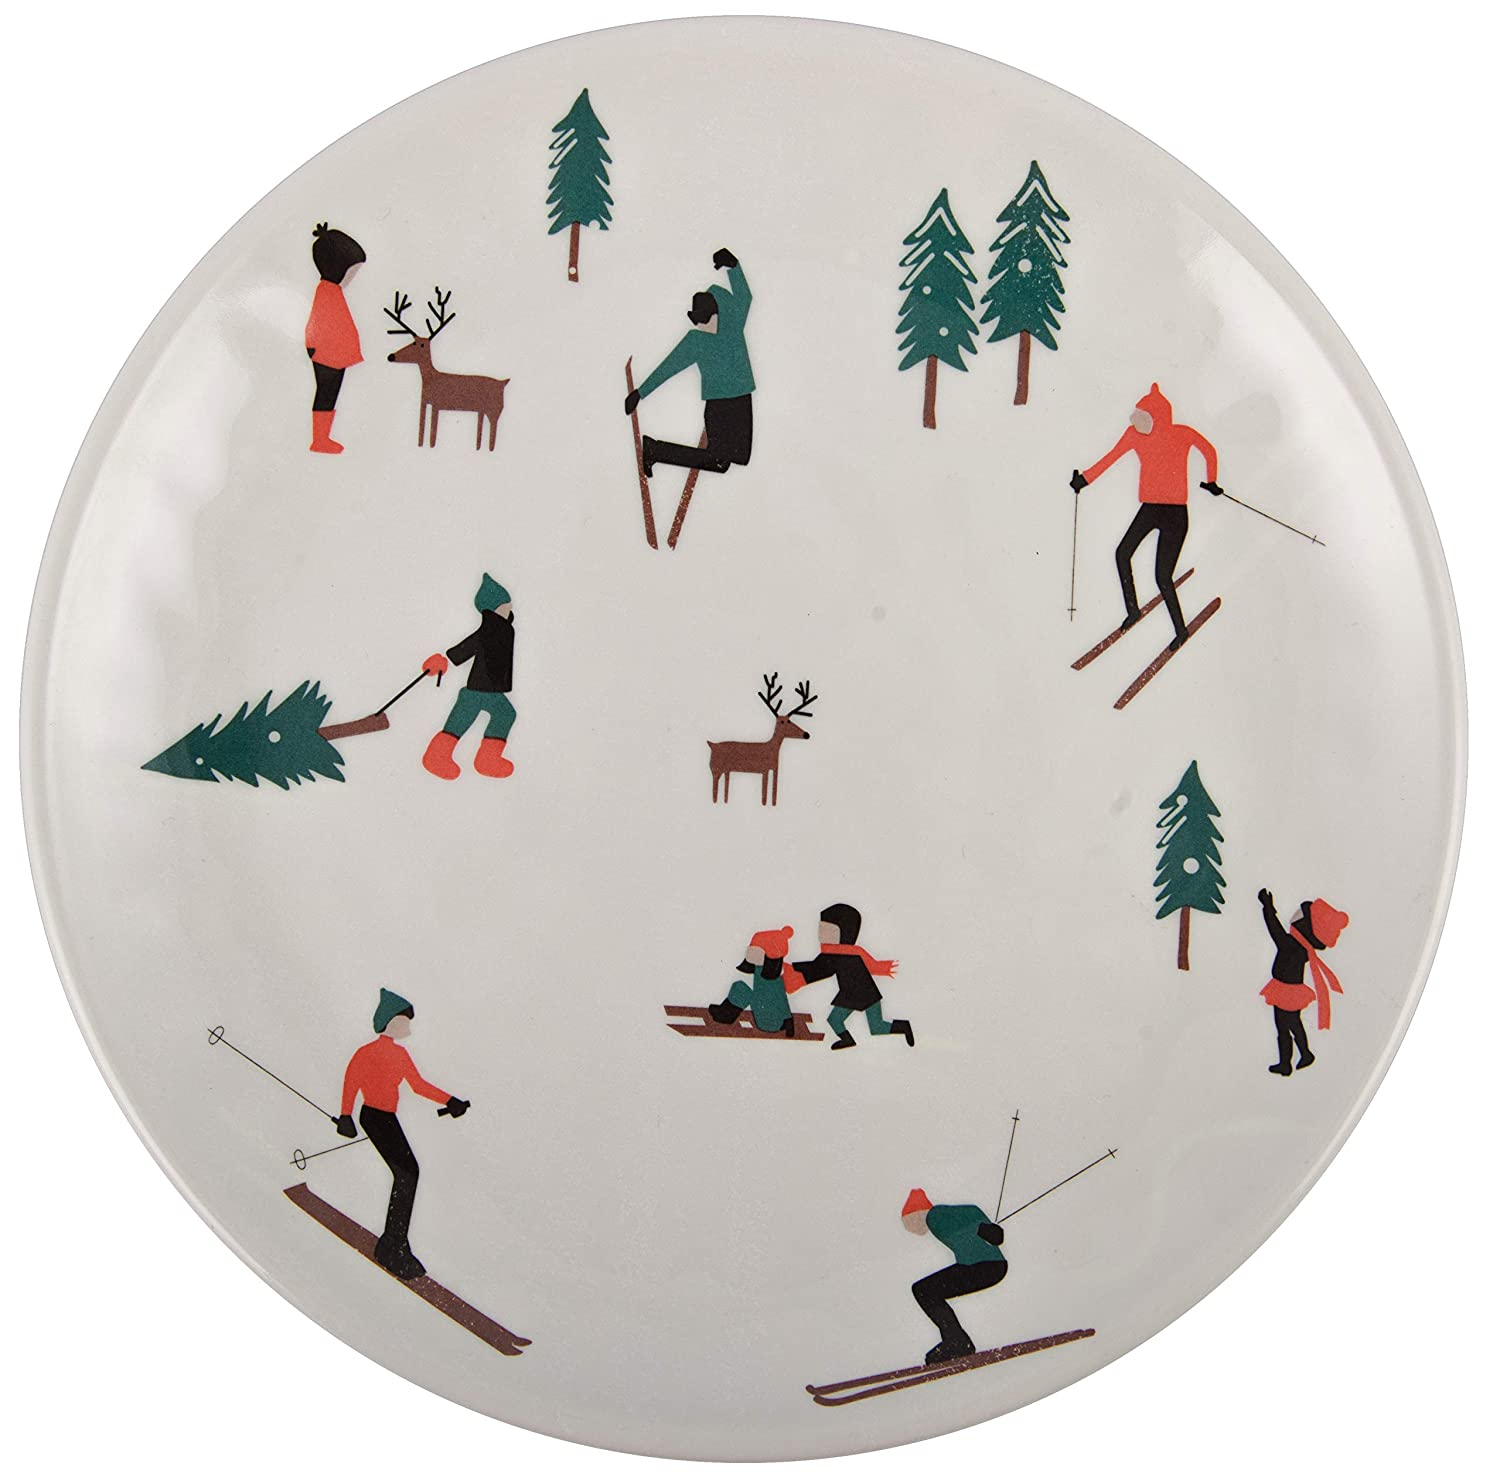 10.5 White Melange 608410095663 36 Piece 100/% Melamine Salad Plates Christmas Collection-Ski Holiday Shatter-Proof and Chip-Resistant